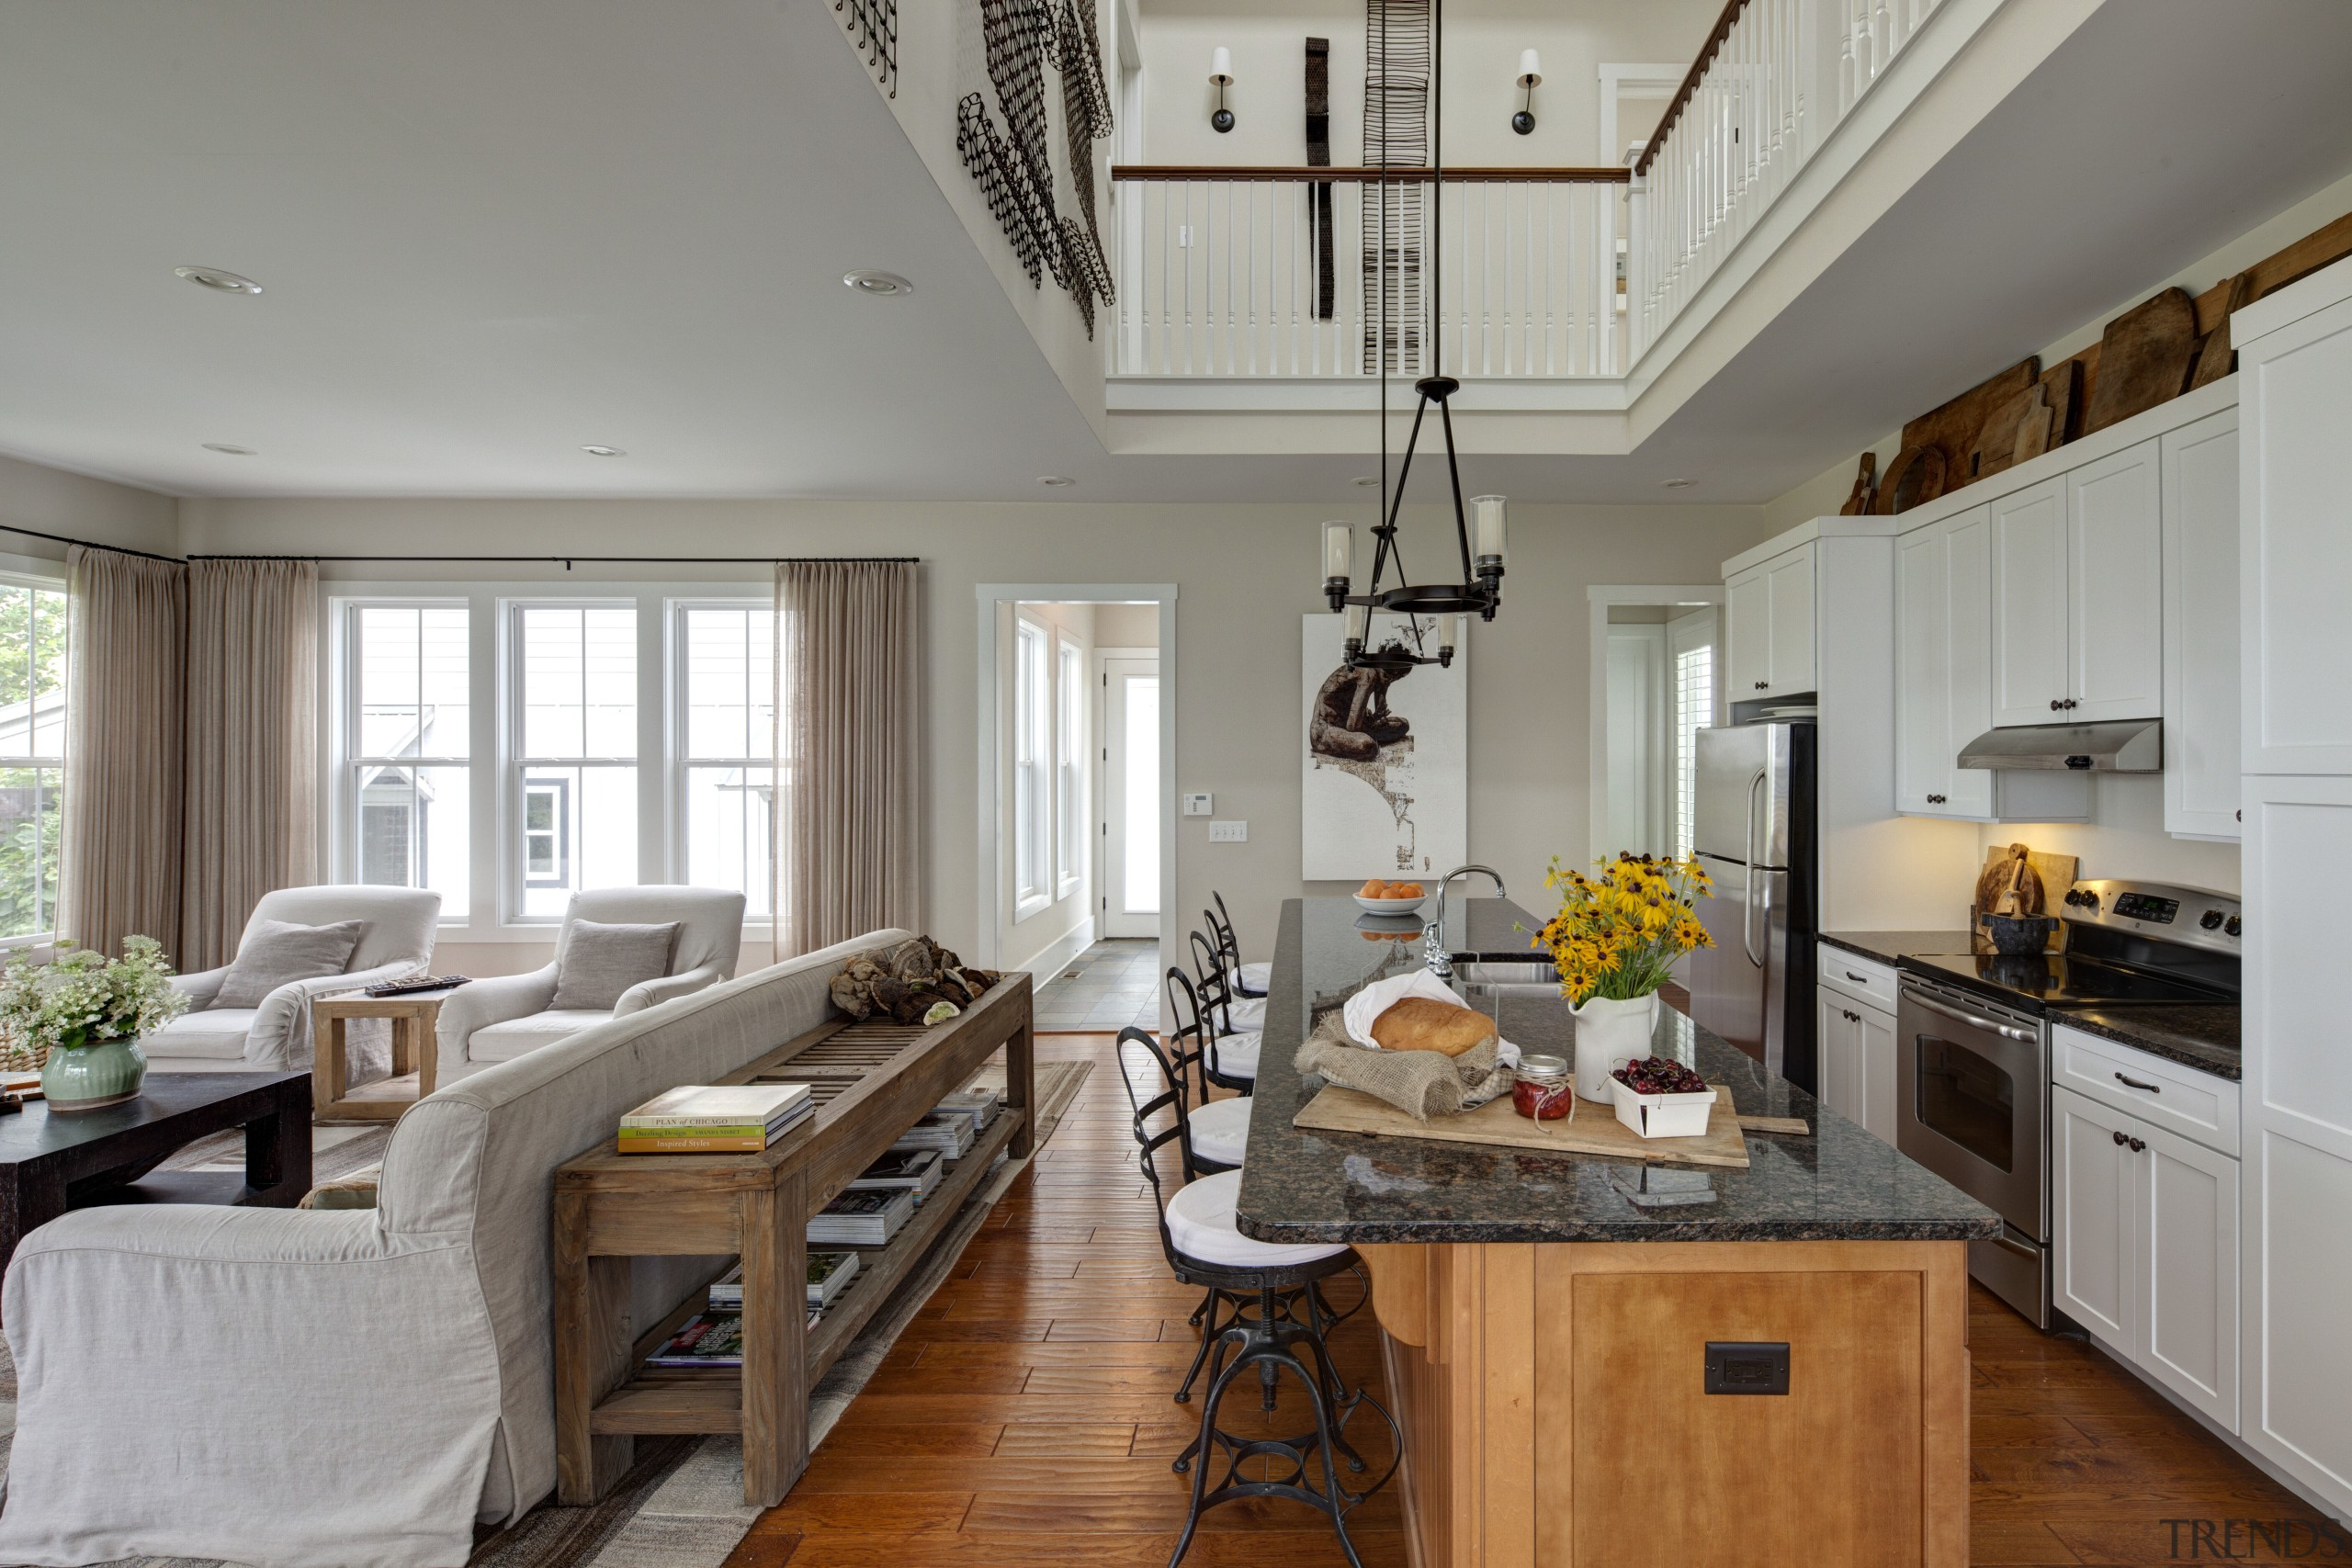 Kitchen in Amish style new home - Kitchen ceiling, countertop, interior design, kitchen, living room, room, gray